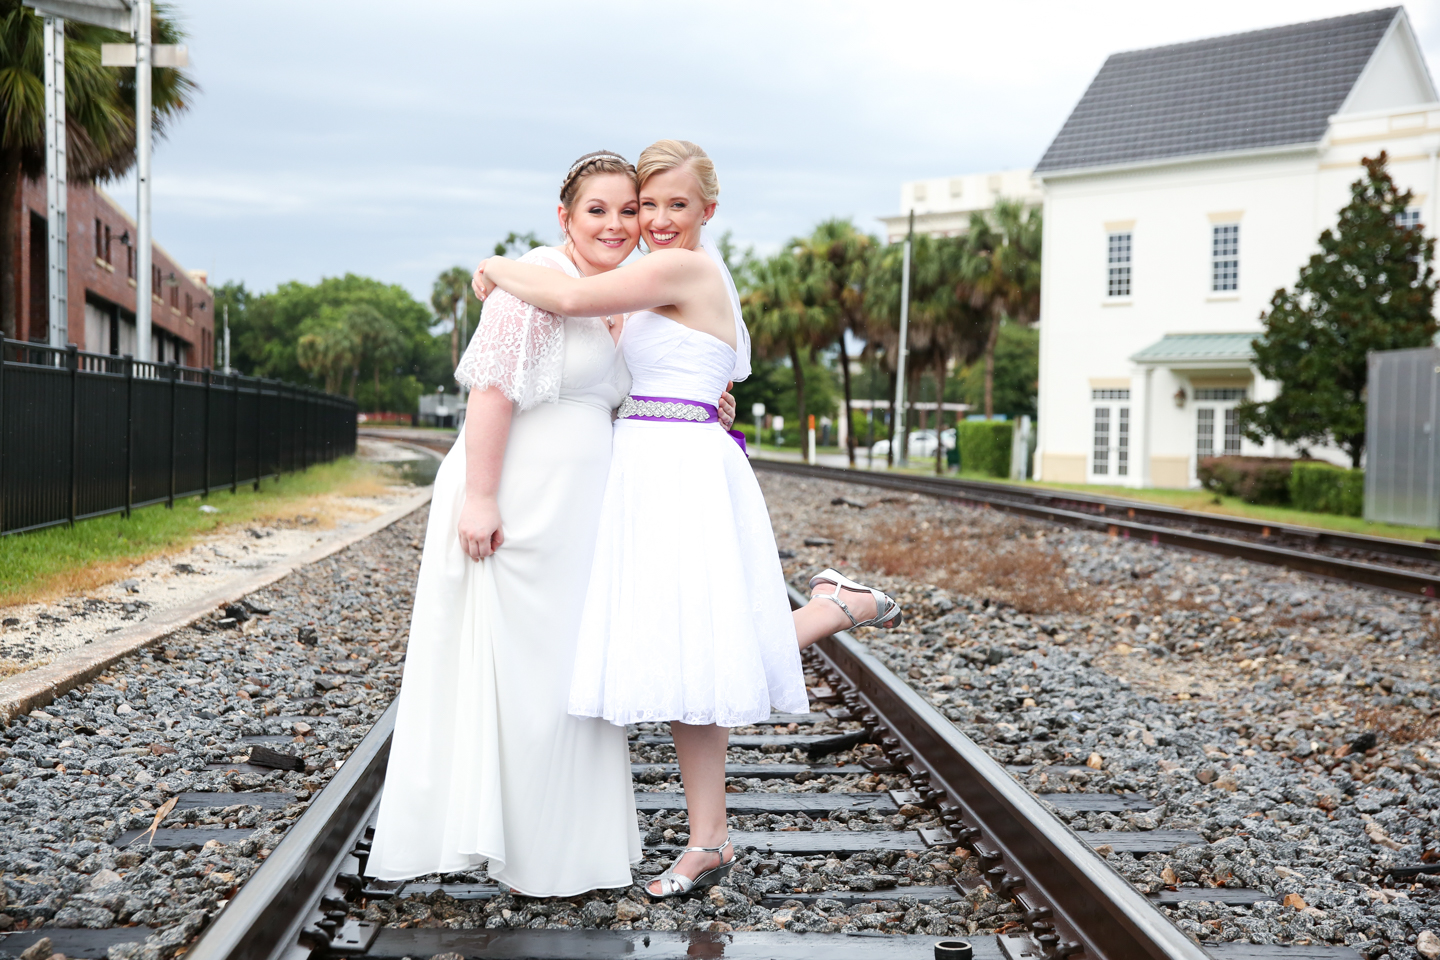 www.livehappystudio.com-wedding-photographer-orlando-fun-candid-portrait-gay-same-sex-couple-railroad-tracks-winter-park-farmers-market-49.jpg